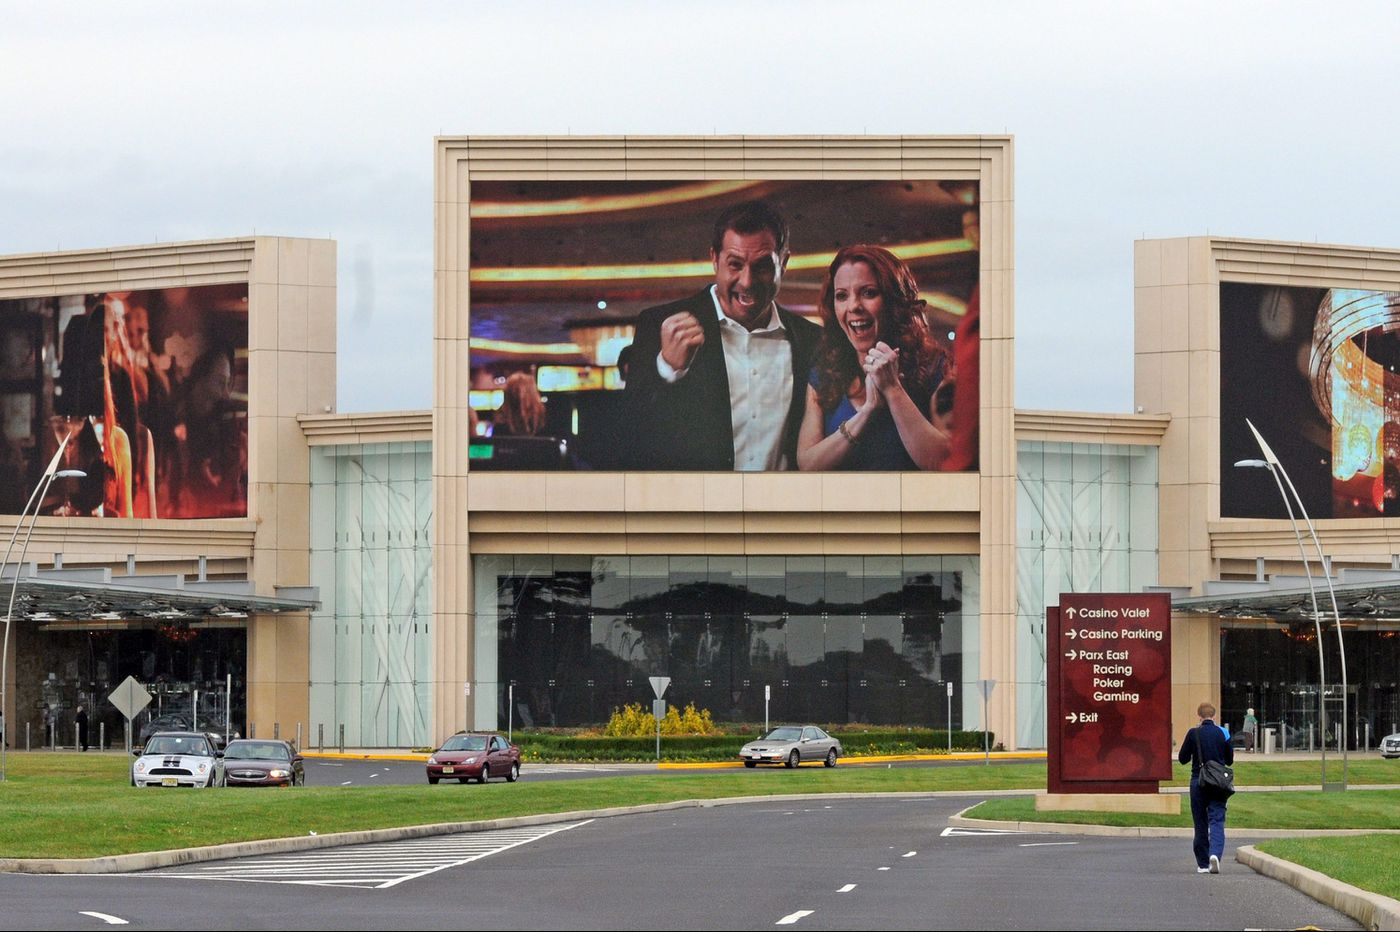 Parx, SugarHouse get green light to launch sports betting soon